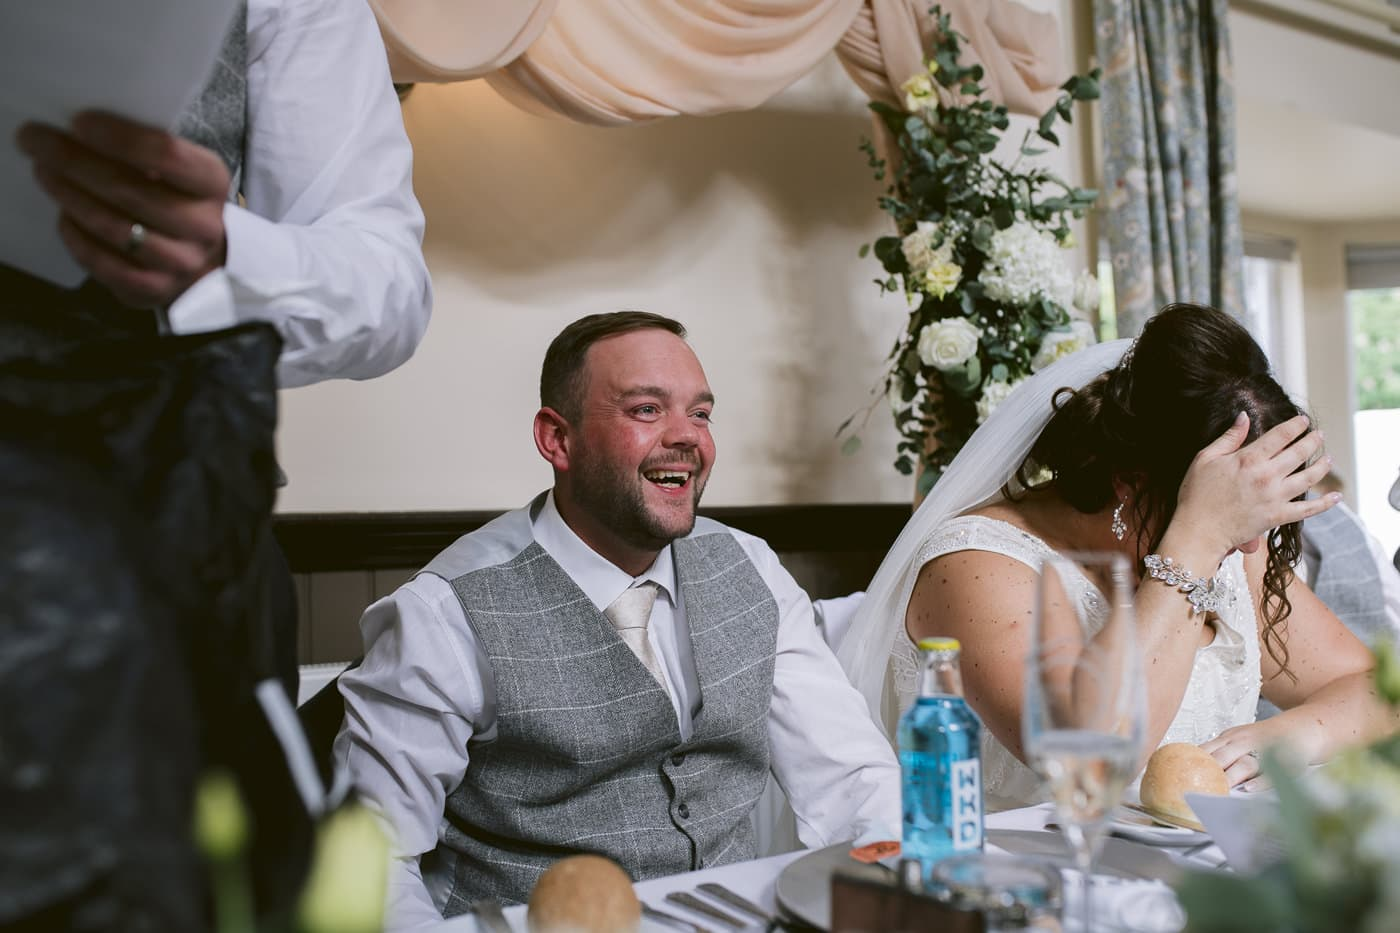 Groom Sitting at Table Laughing Photography Shoot